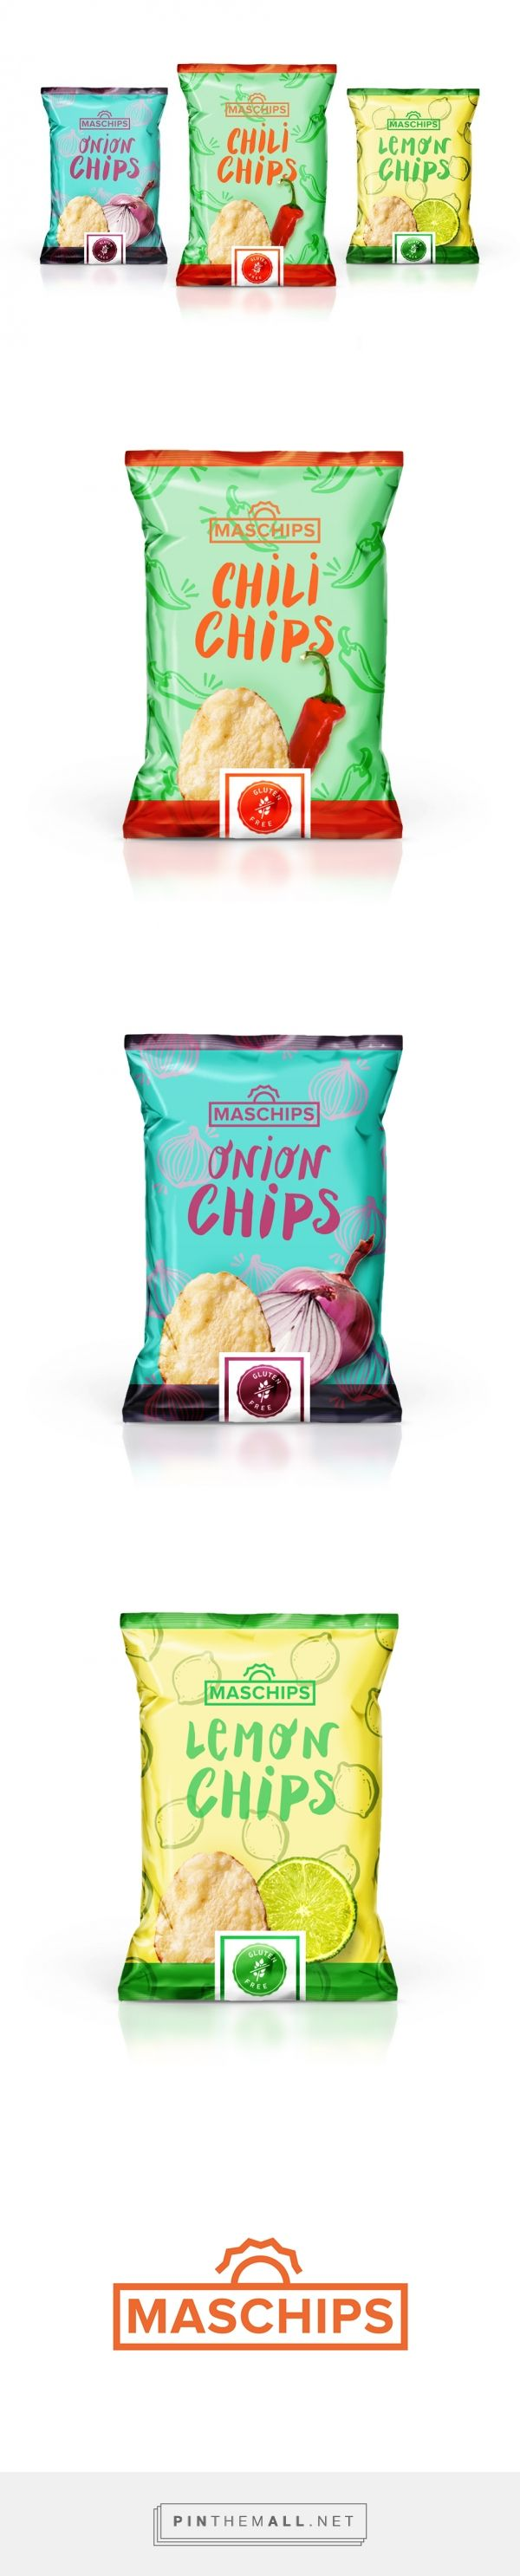 MASCHIPS (Concept) - Packaging of the World - Creative Package Design Gallery - http://www.packagingoftheworld.com/2016/03/maschips-concept.html